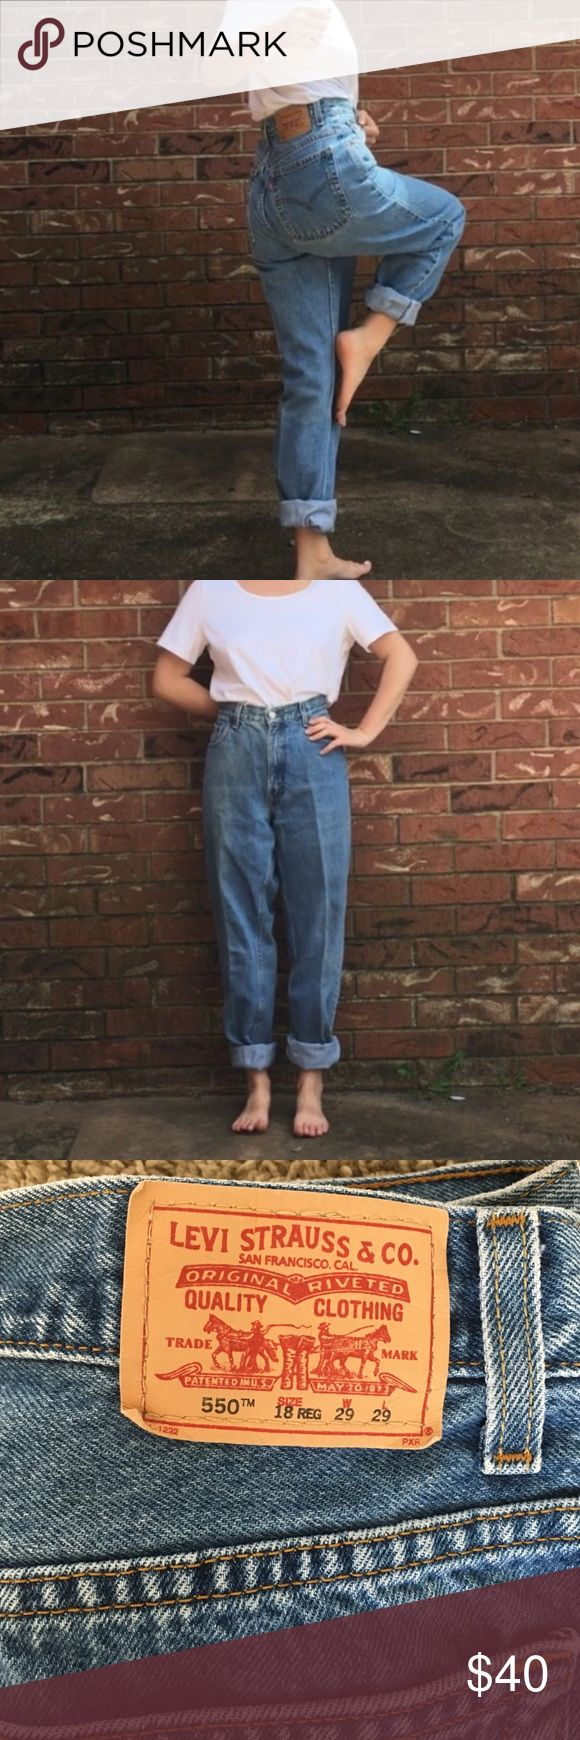 Levi's 550 mom jeans Vintage Levi's 550 mom jeans in excellent condition! Waist is 27/28 inches and the inseam is 28 inches but can always but cut or rolled to adjust ❤️ Levi's Jeans